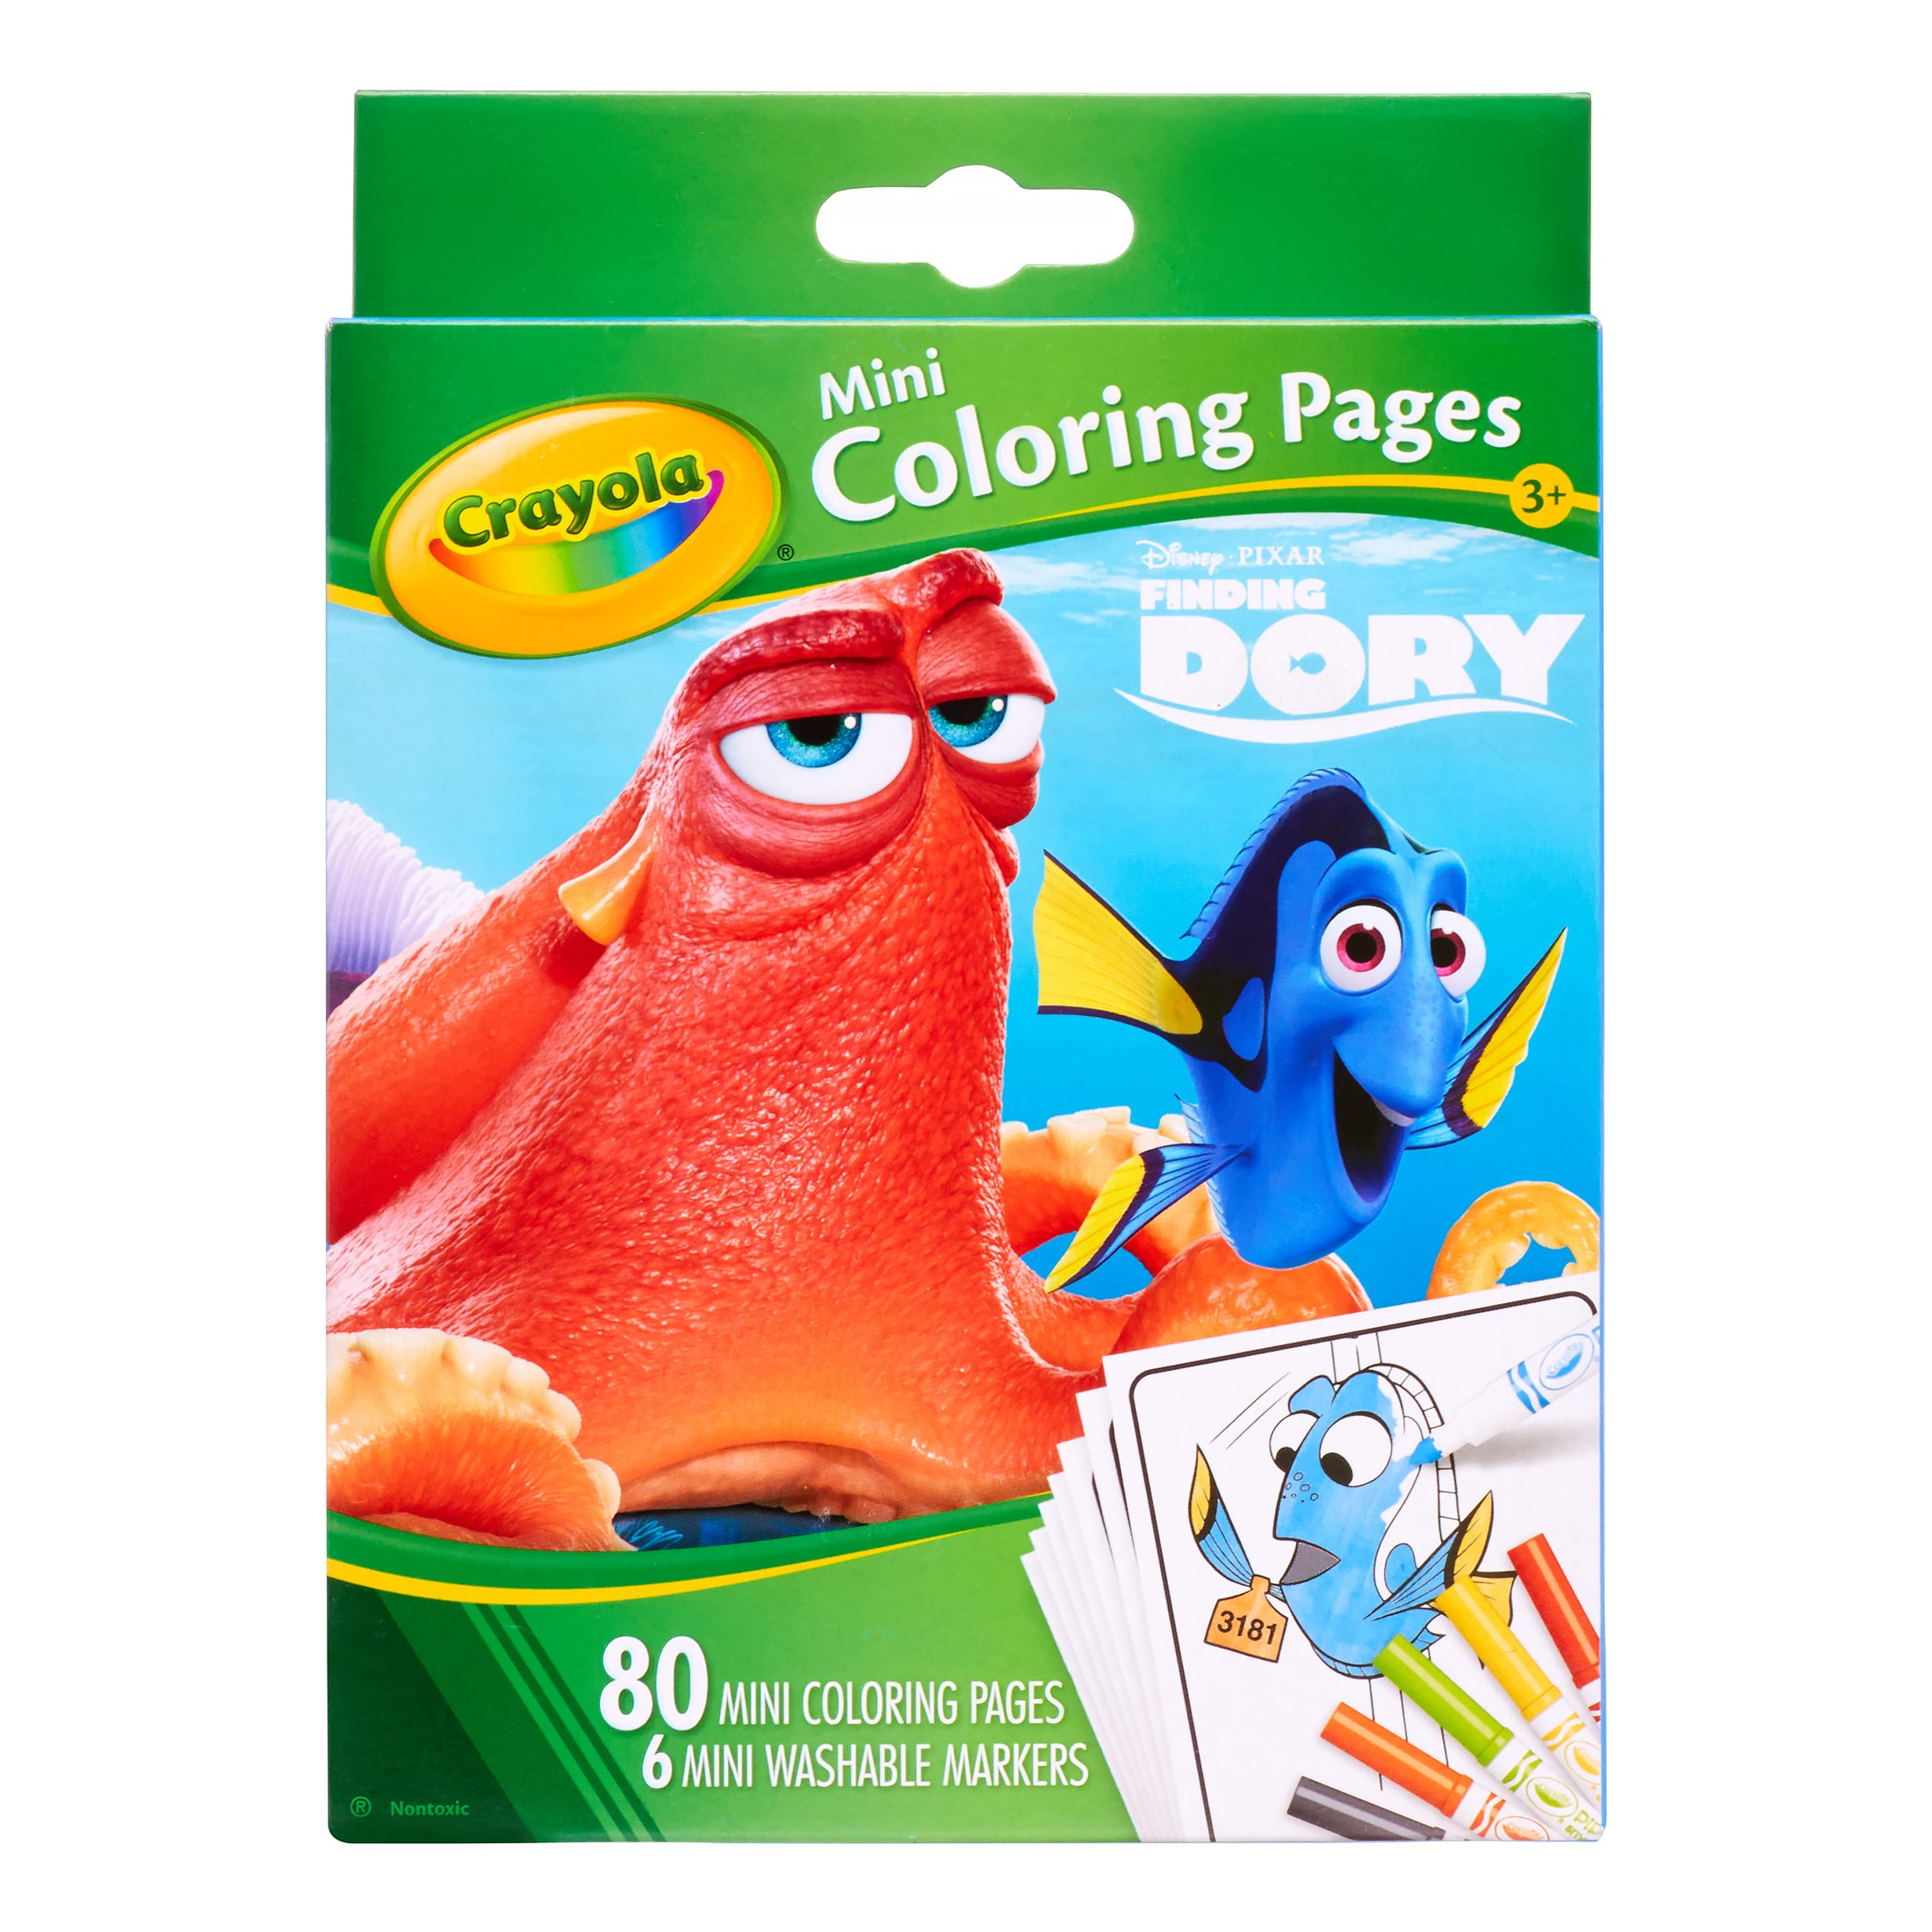 Dory Mini Coloring Pages